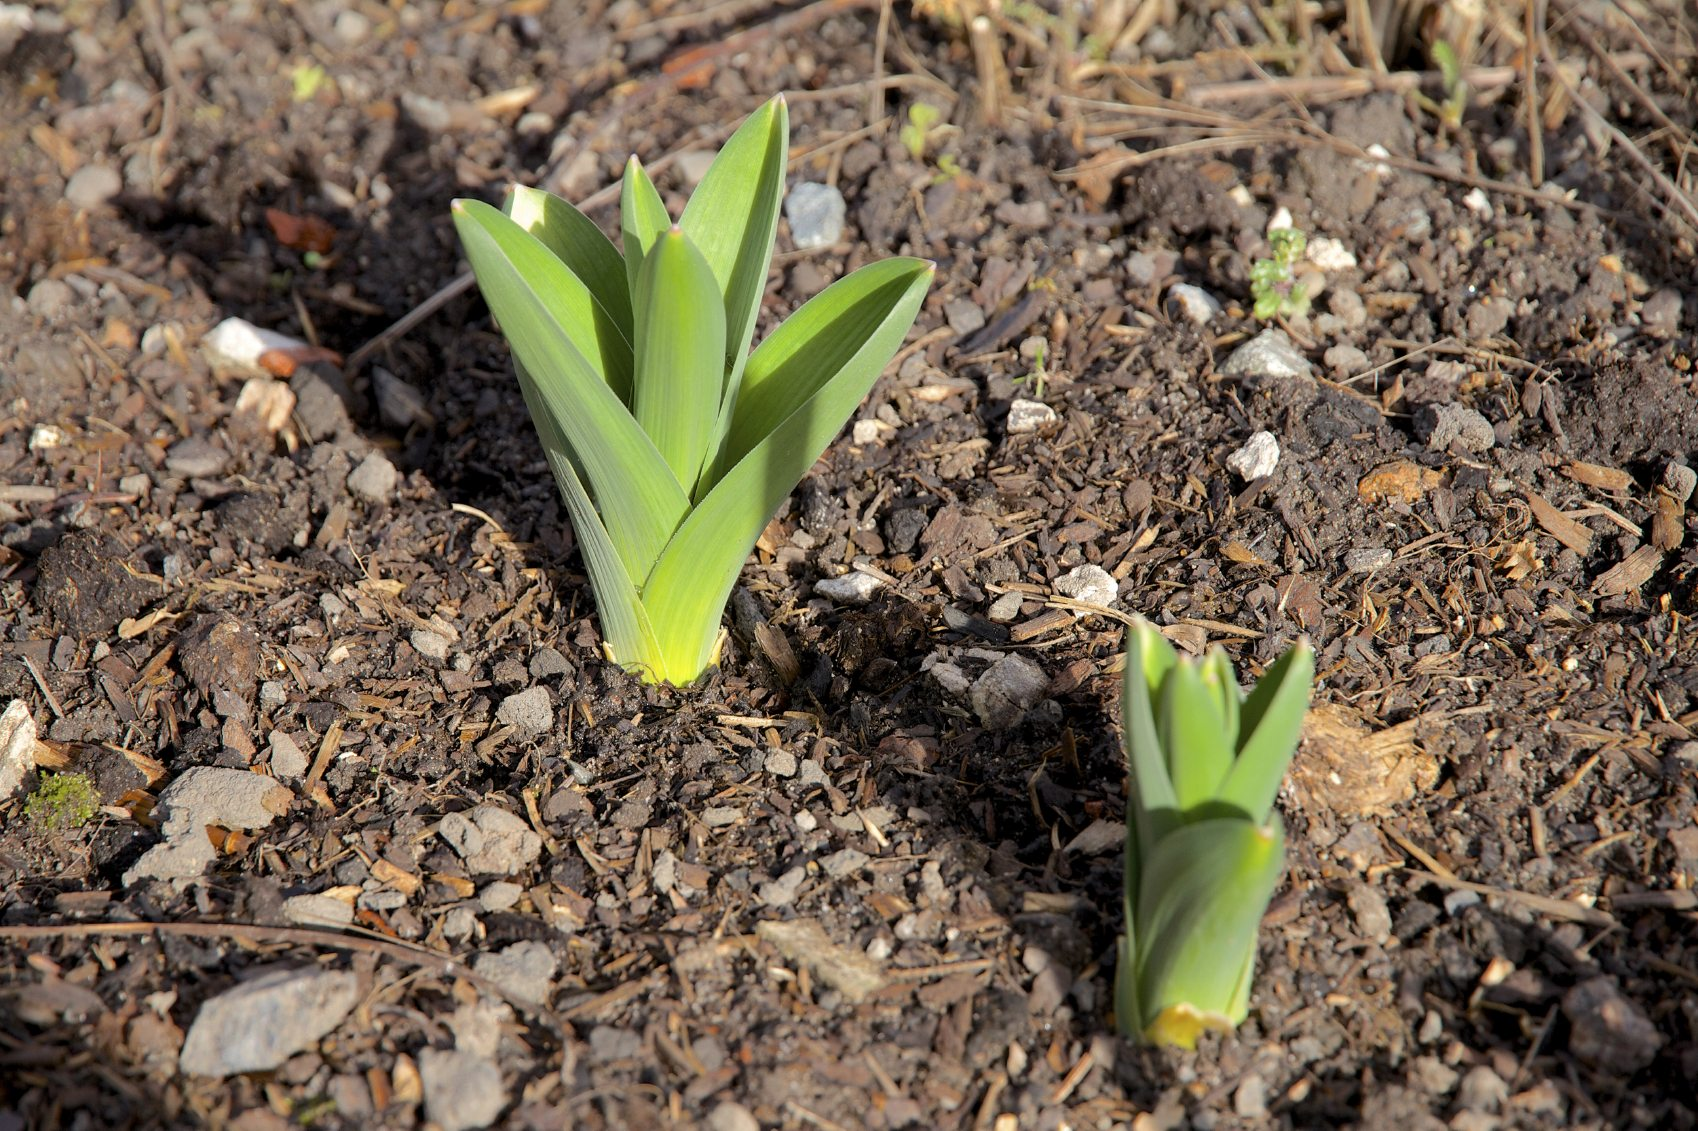 Info On Spring Bulb Flowers How Long Does It Take For Bulbs To Sprout